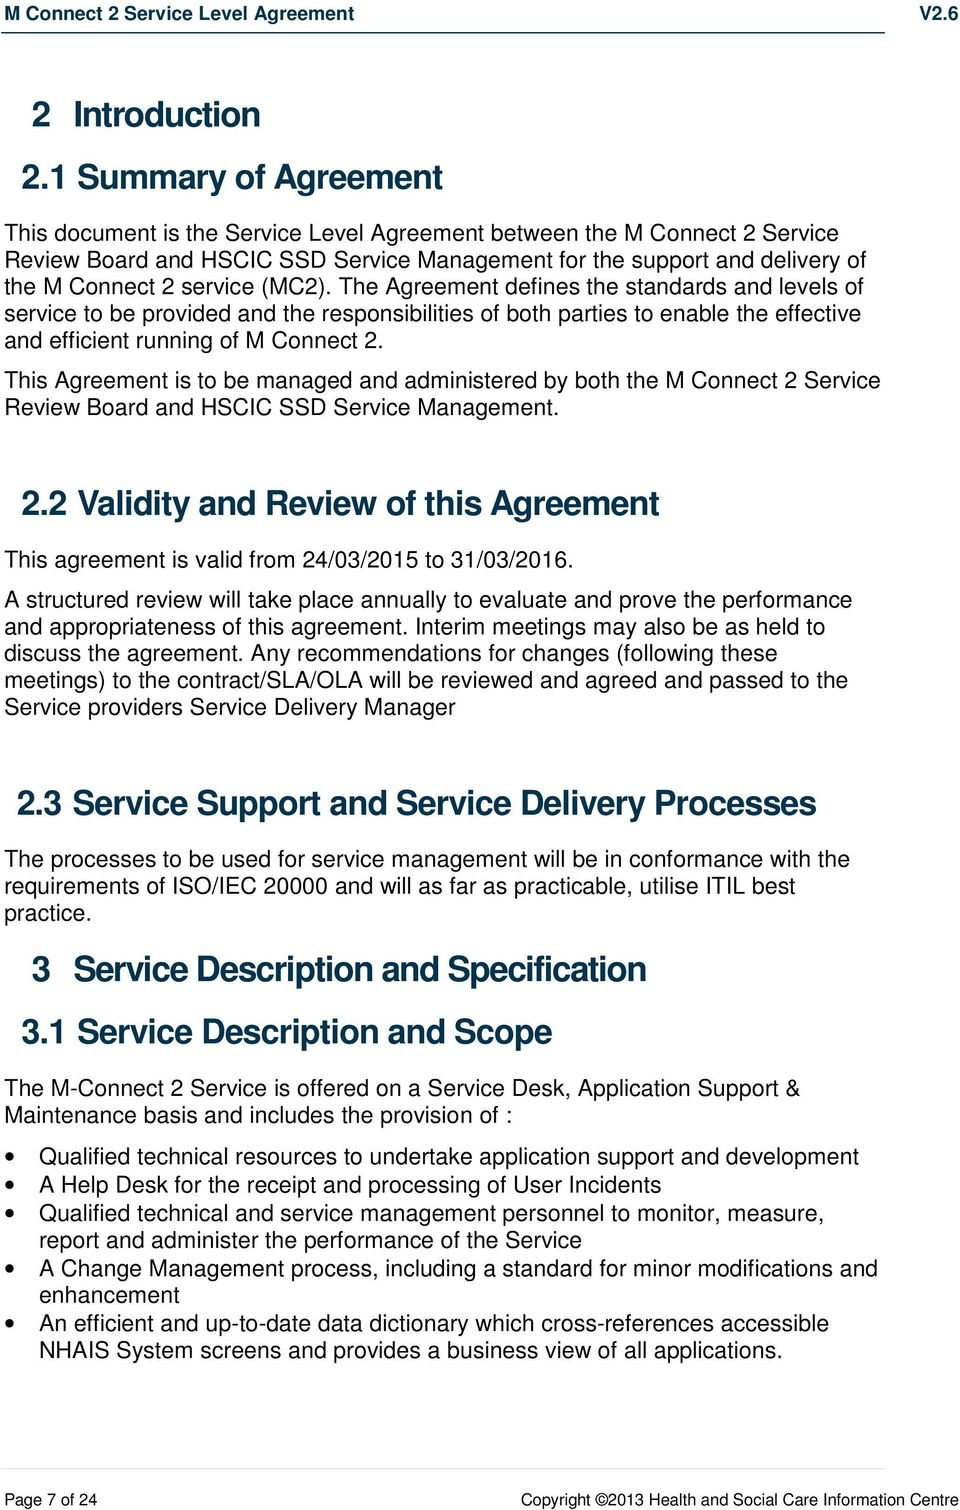 Service Level Agreement (SLA) for the M Connect 2 System - PDF